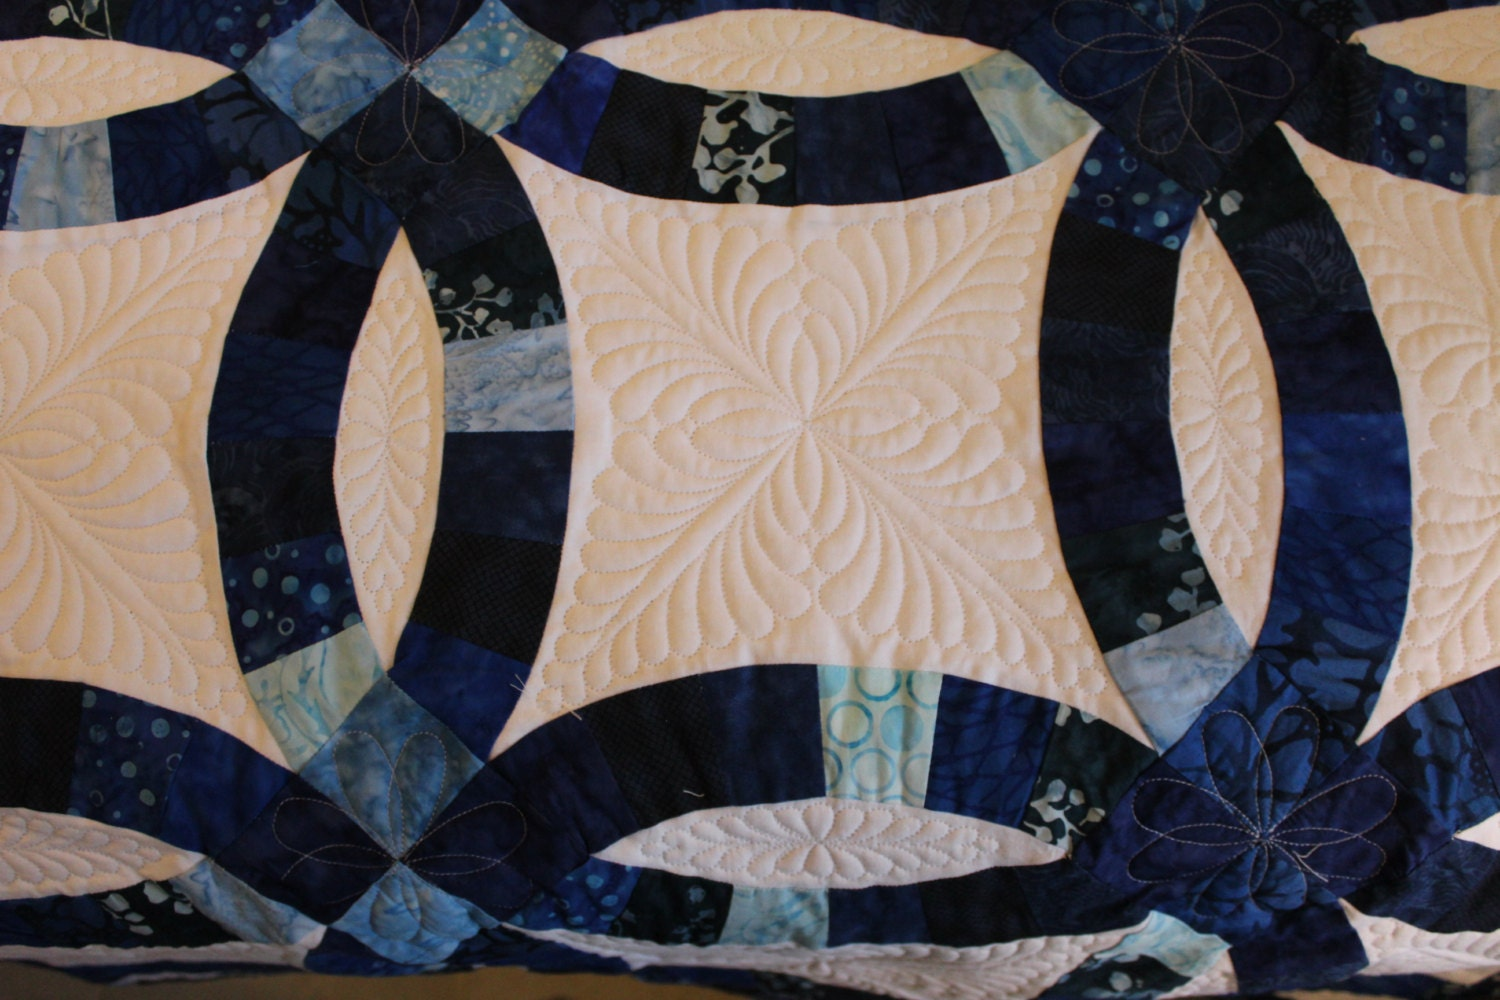 Indigo Blue Double Wedding Ring quilt, Blue Heirloom Handmade King ... : size of twin size quilt - Adamdwight.com